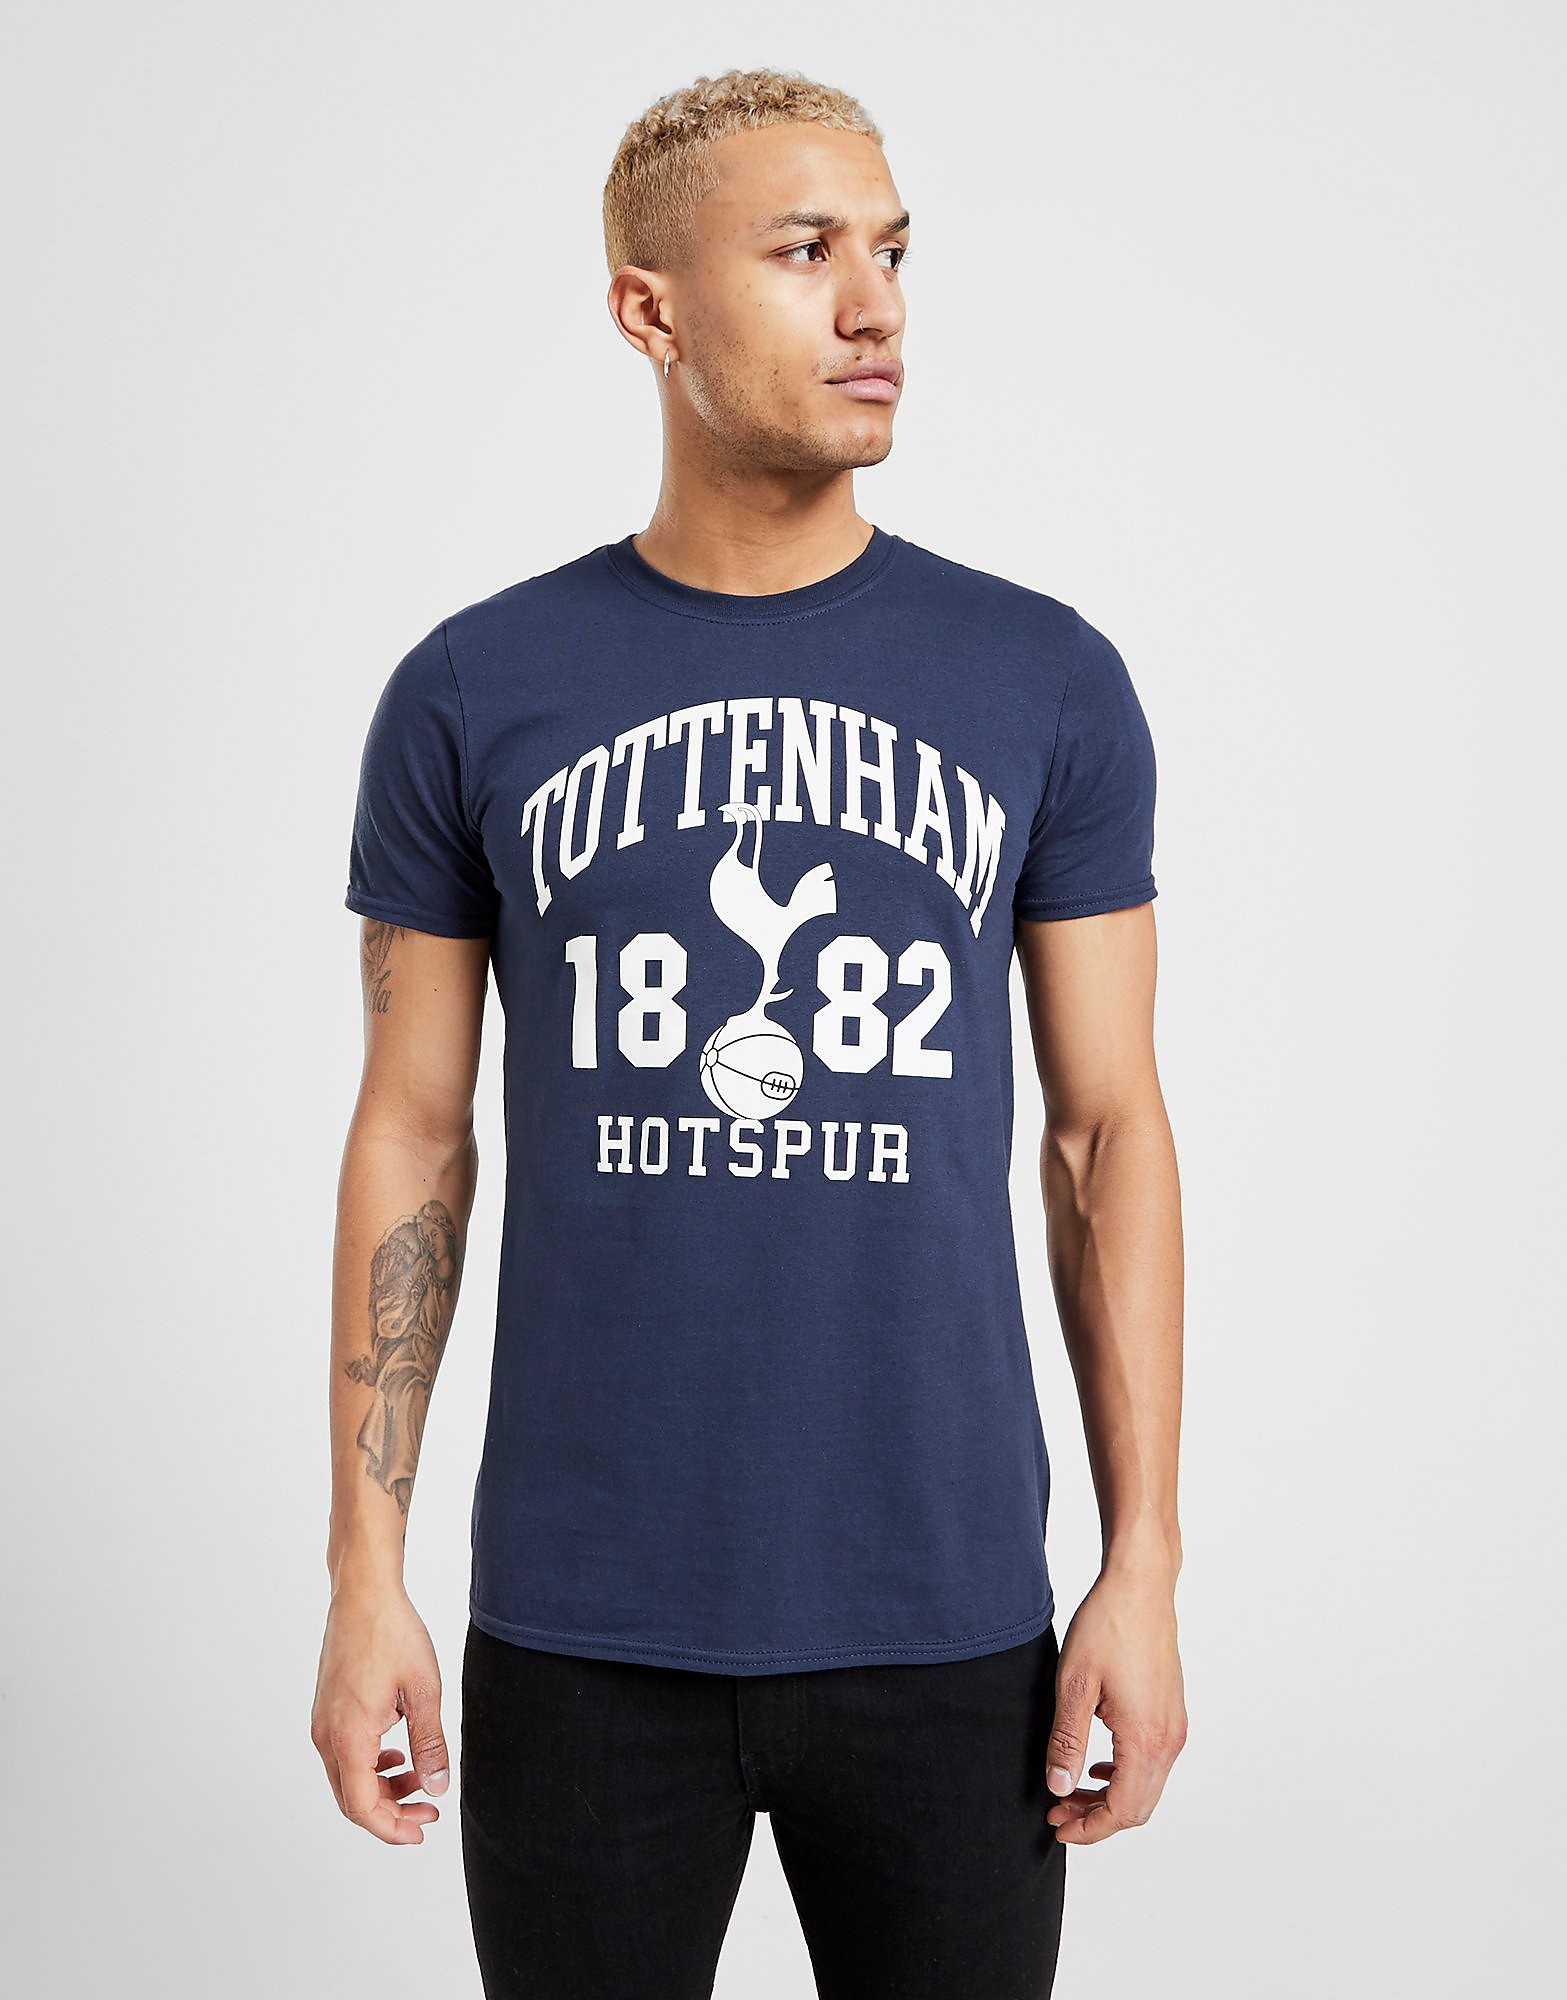 Official Team camiseta Tottenham Hotspur FC 1882